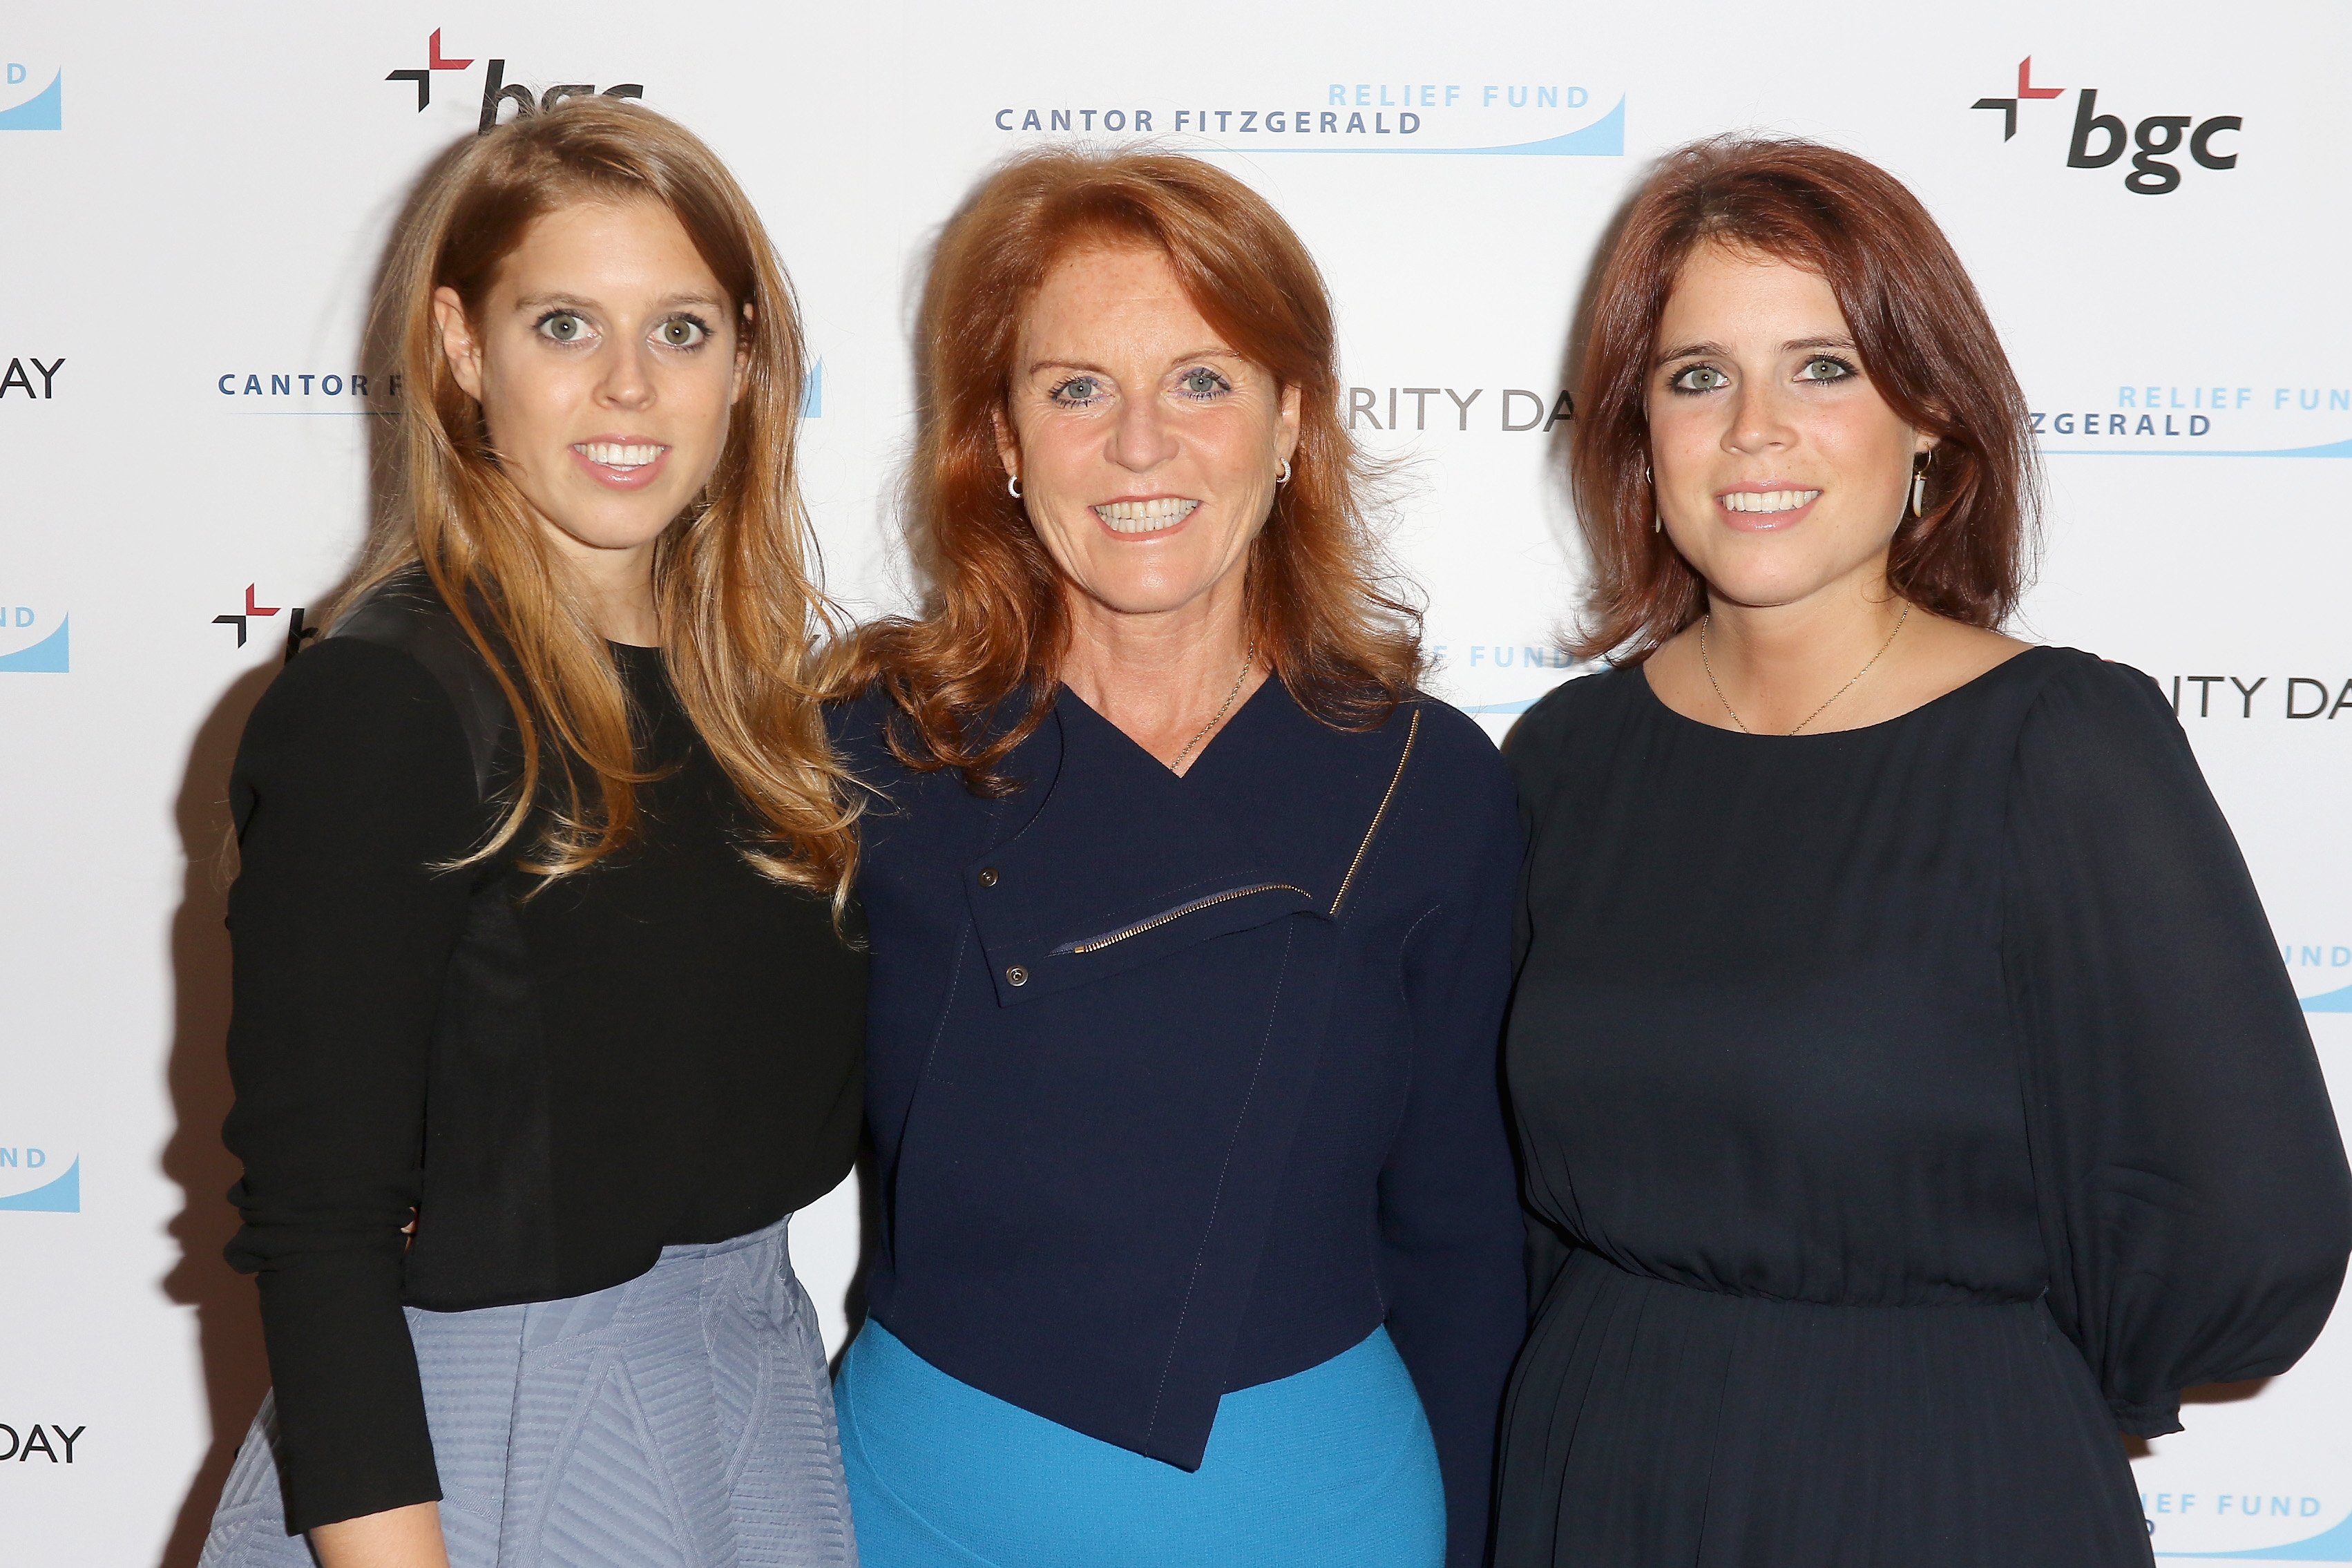 Beatrice Ferguson, Sarah Ferguson, Duchess of York, and Eugenie Ferguson attend Annual Charity Day on September 11, 2015, in New York City. | Source: Getty Images.